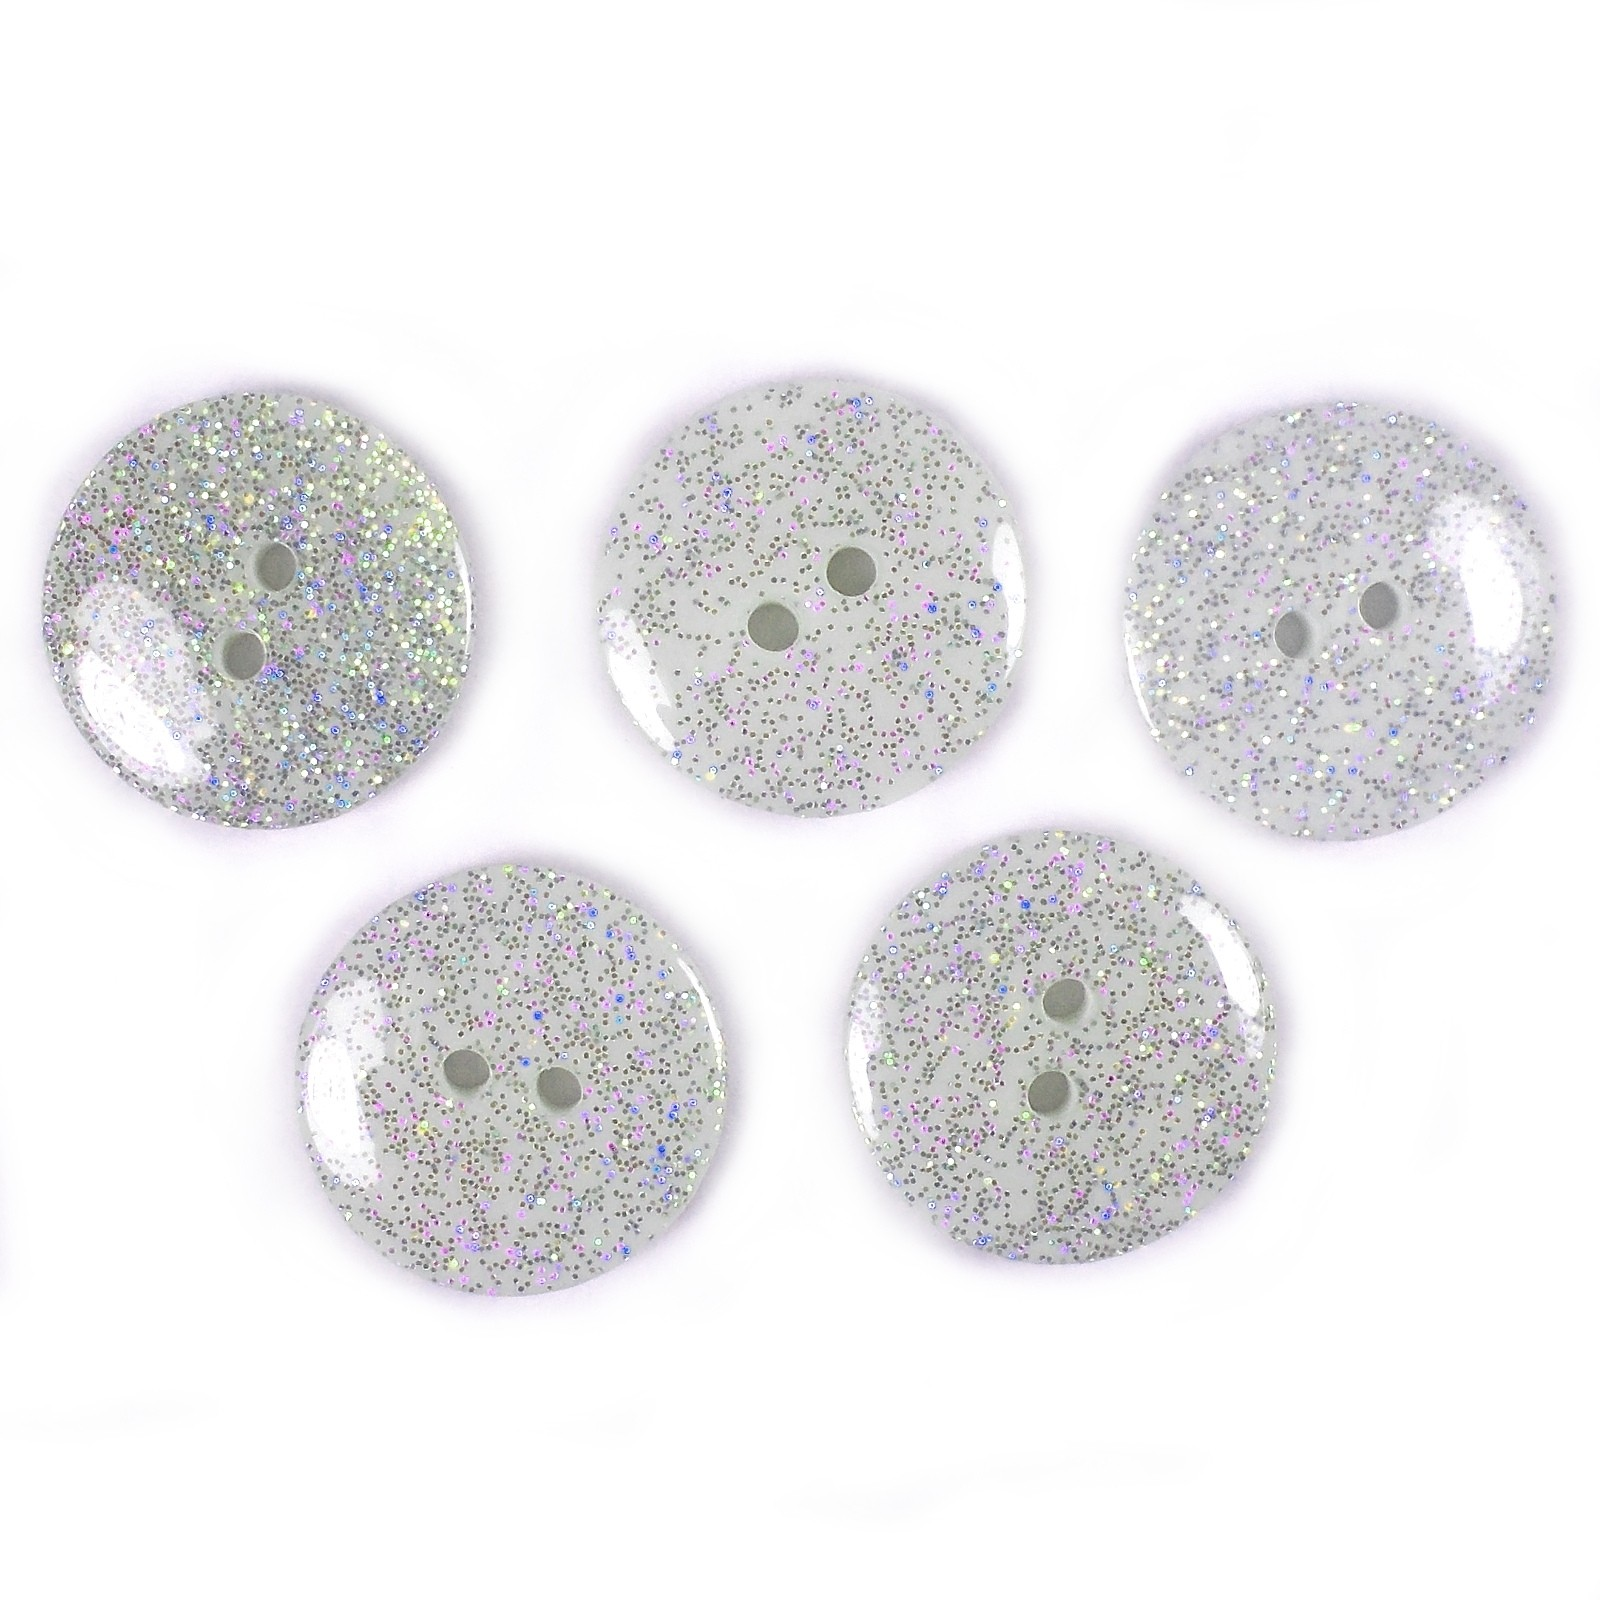 Iridescent Glitter Round 2 Hole Buttons 22mm White Pack of 5